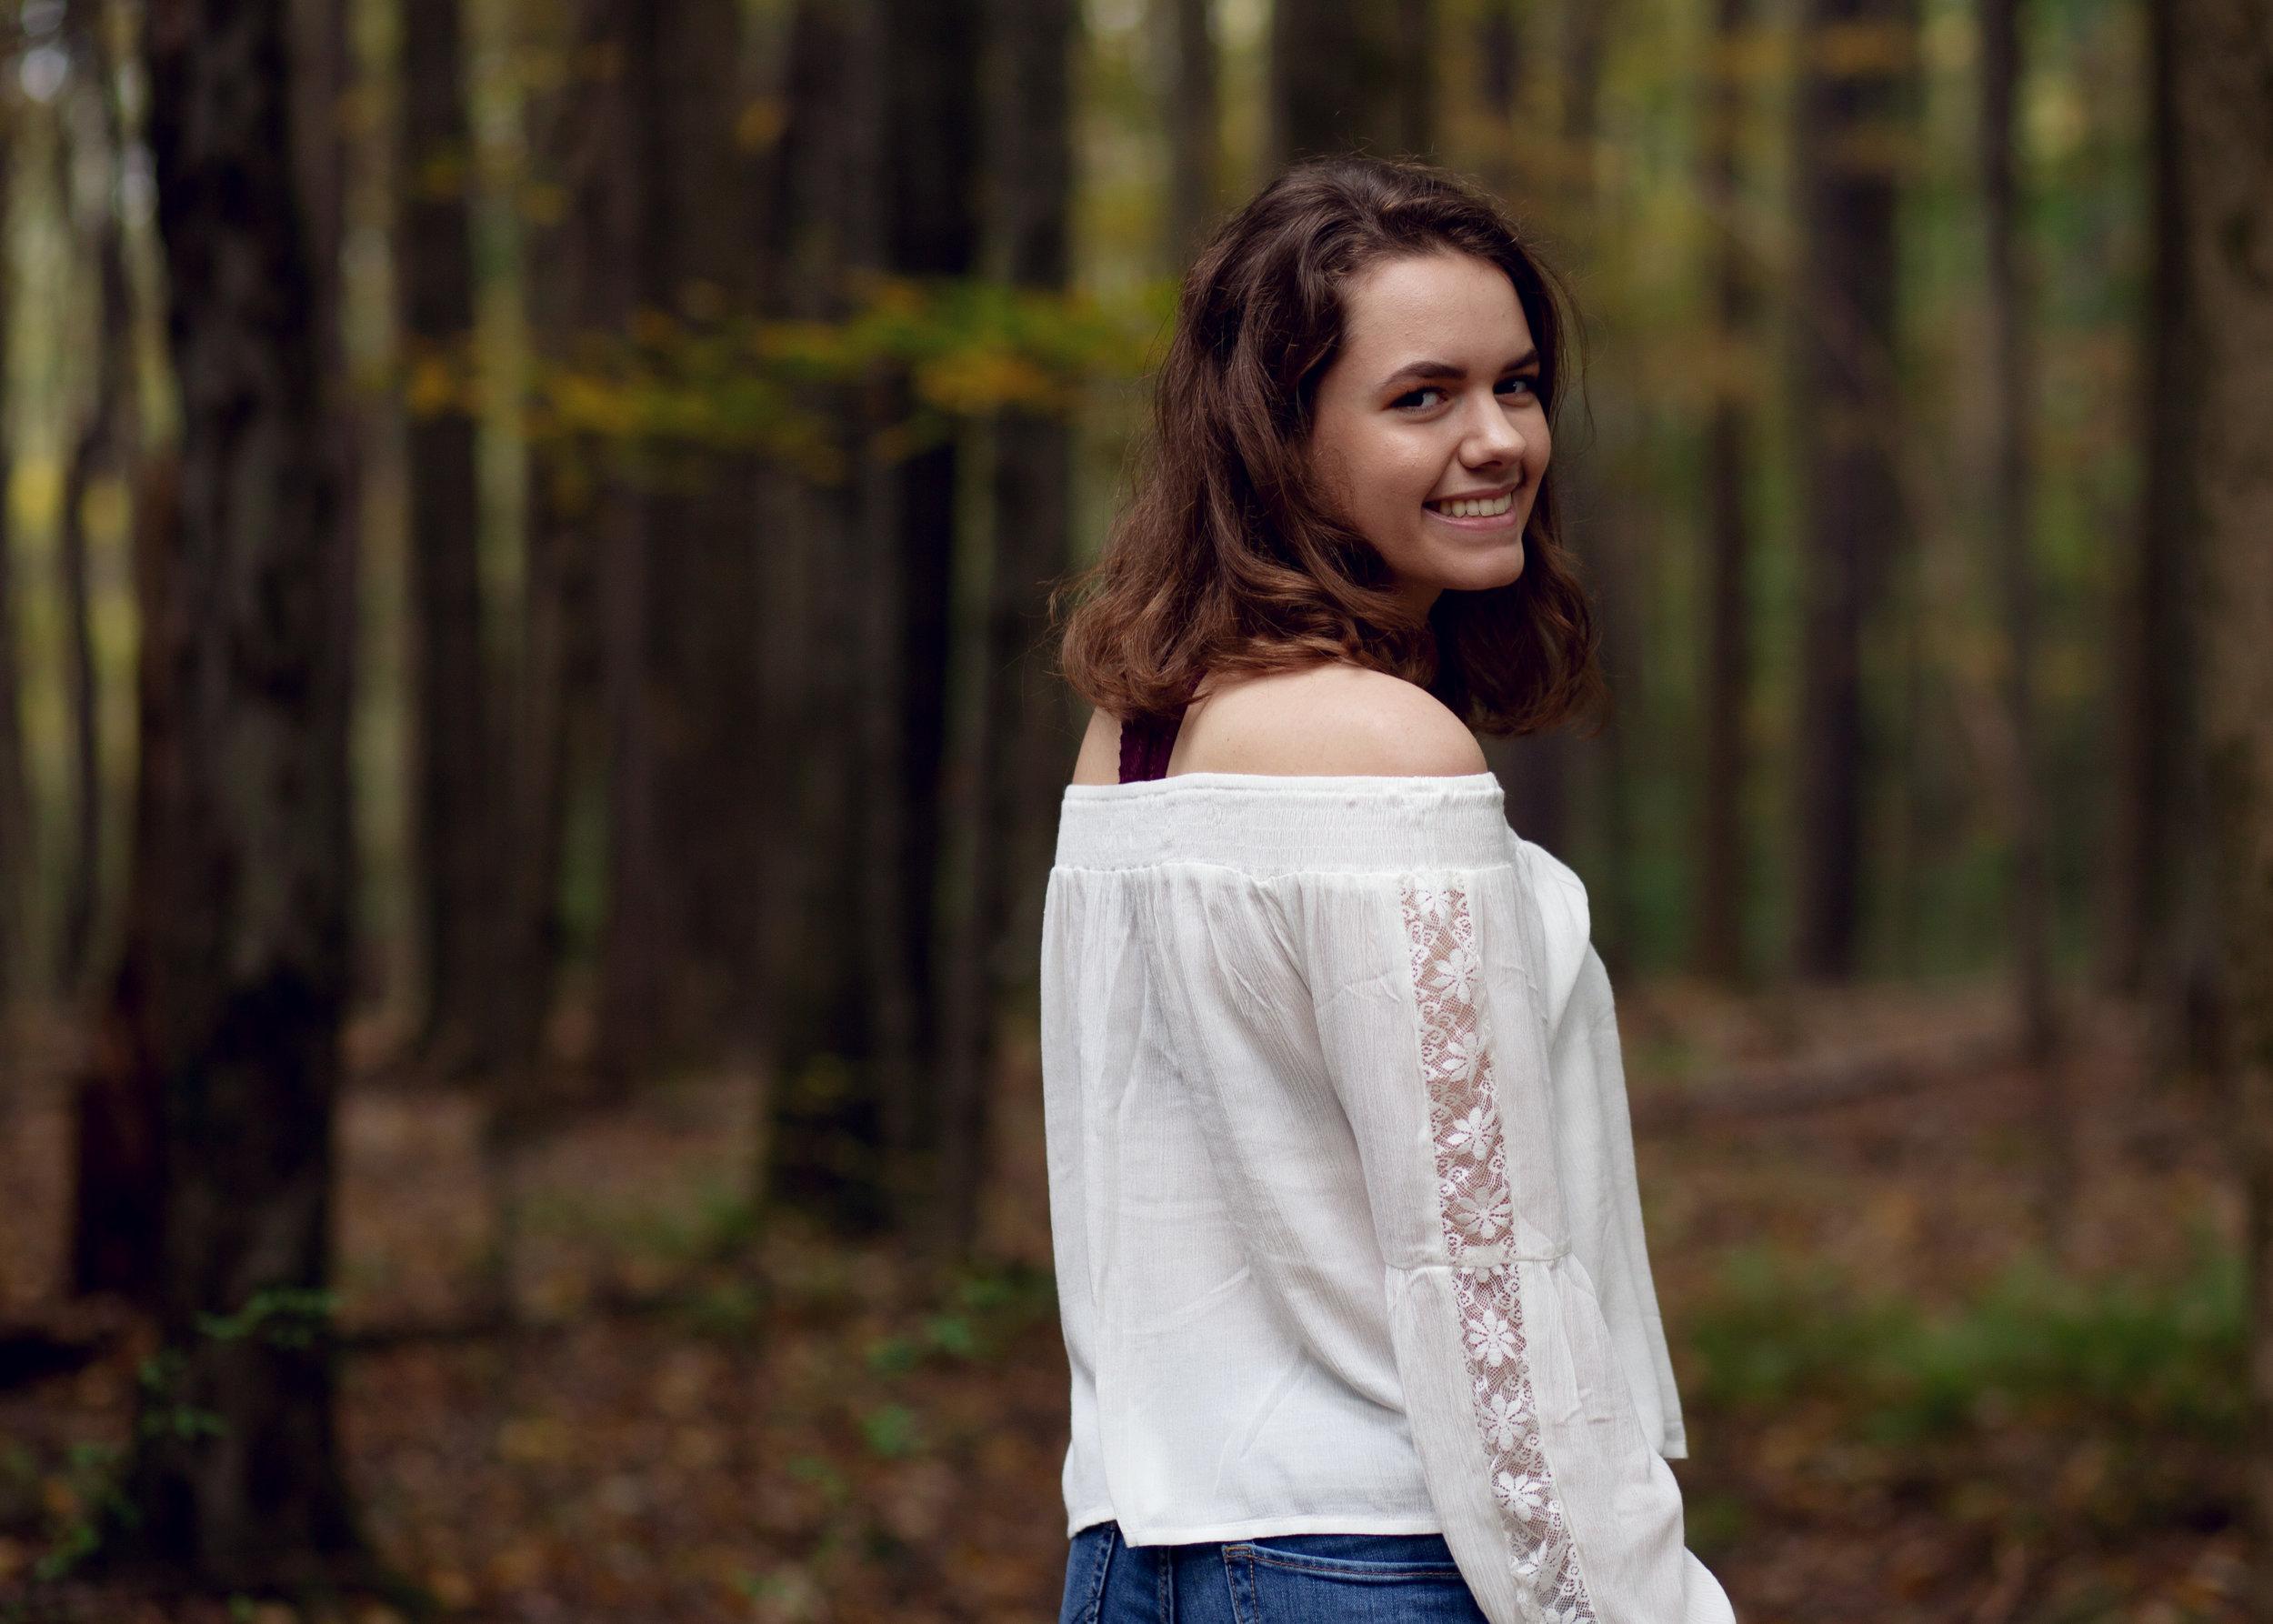 Senior Session | Kelly Rhoades Photography